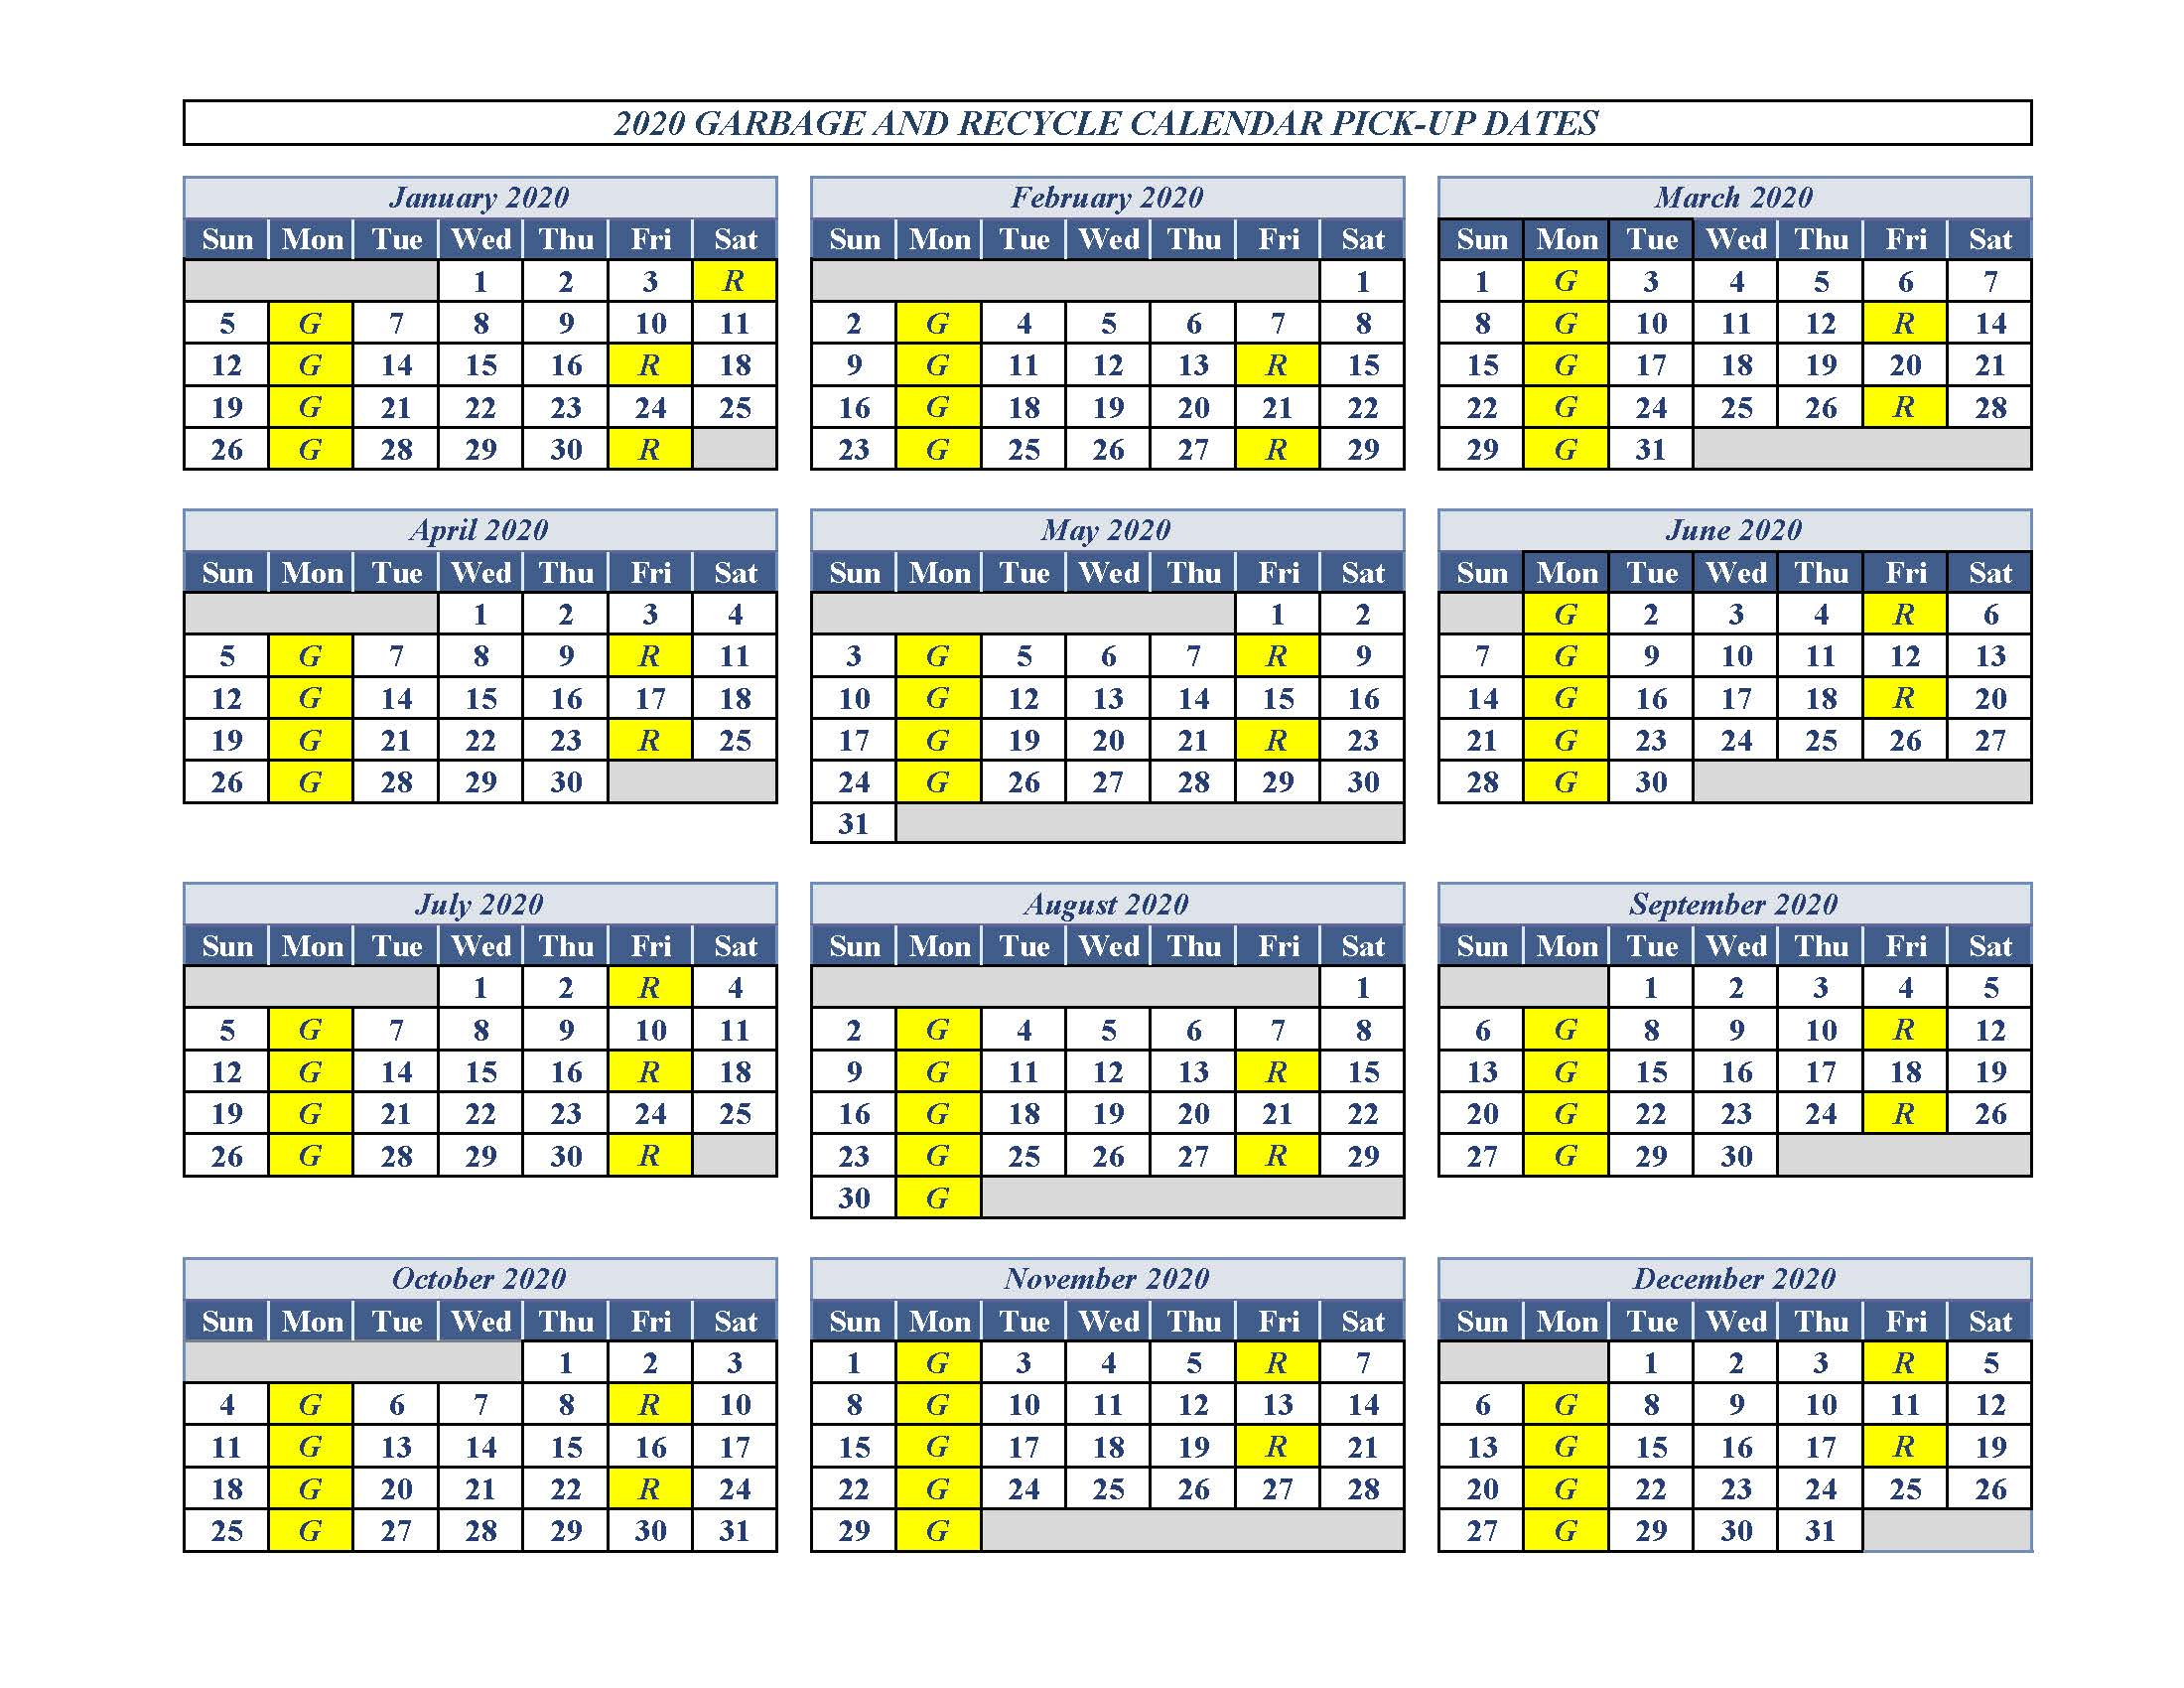 2020 Garbage and Recycling Calendar